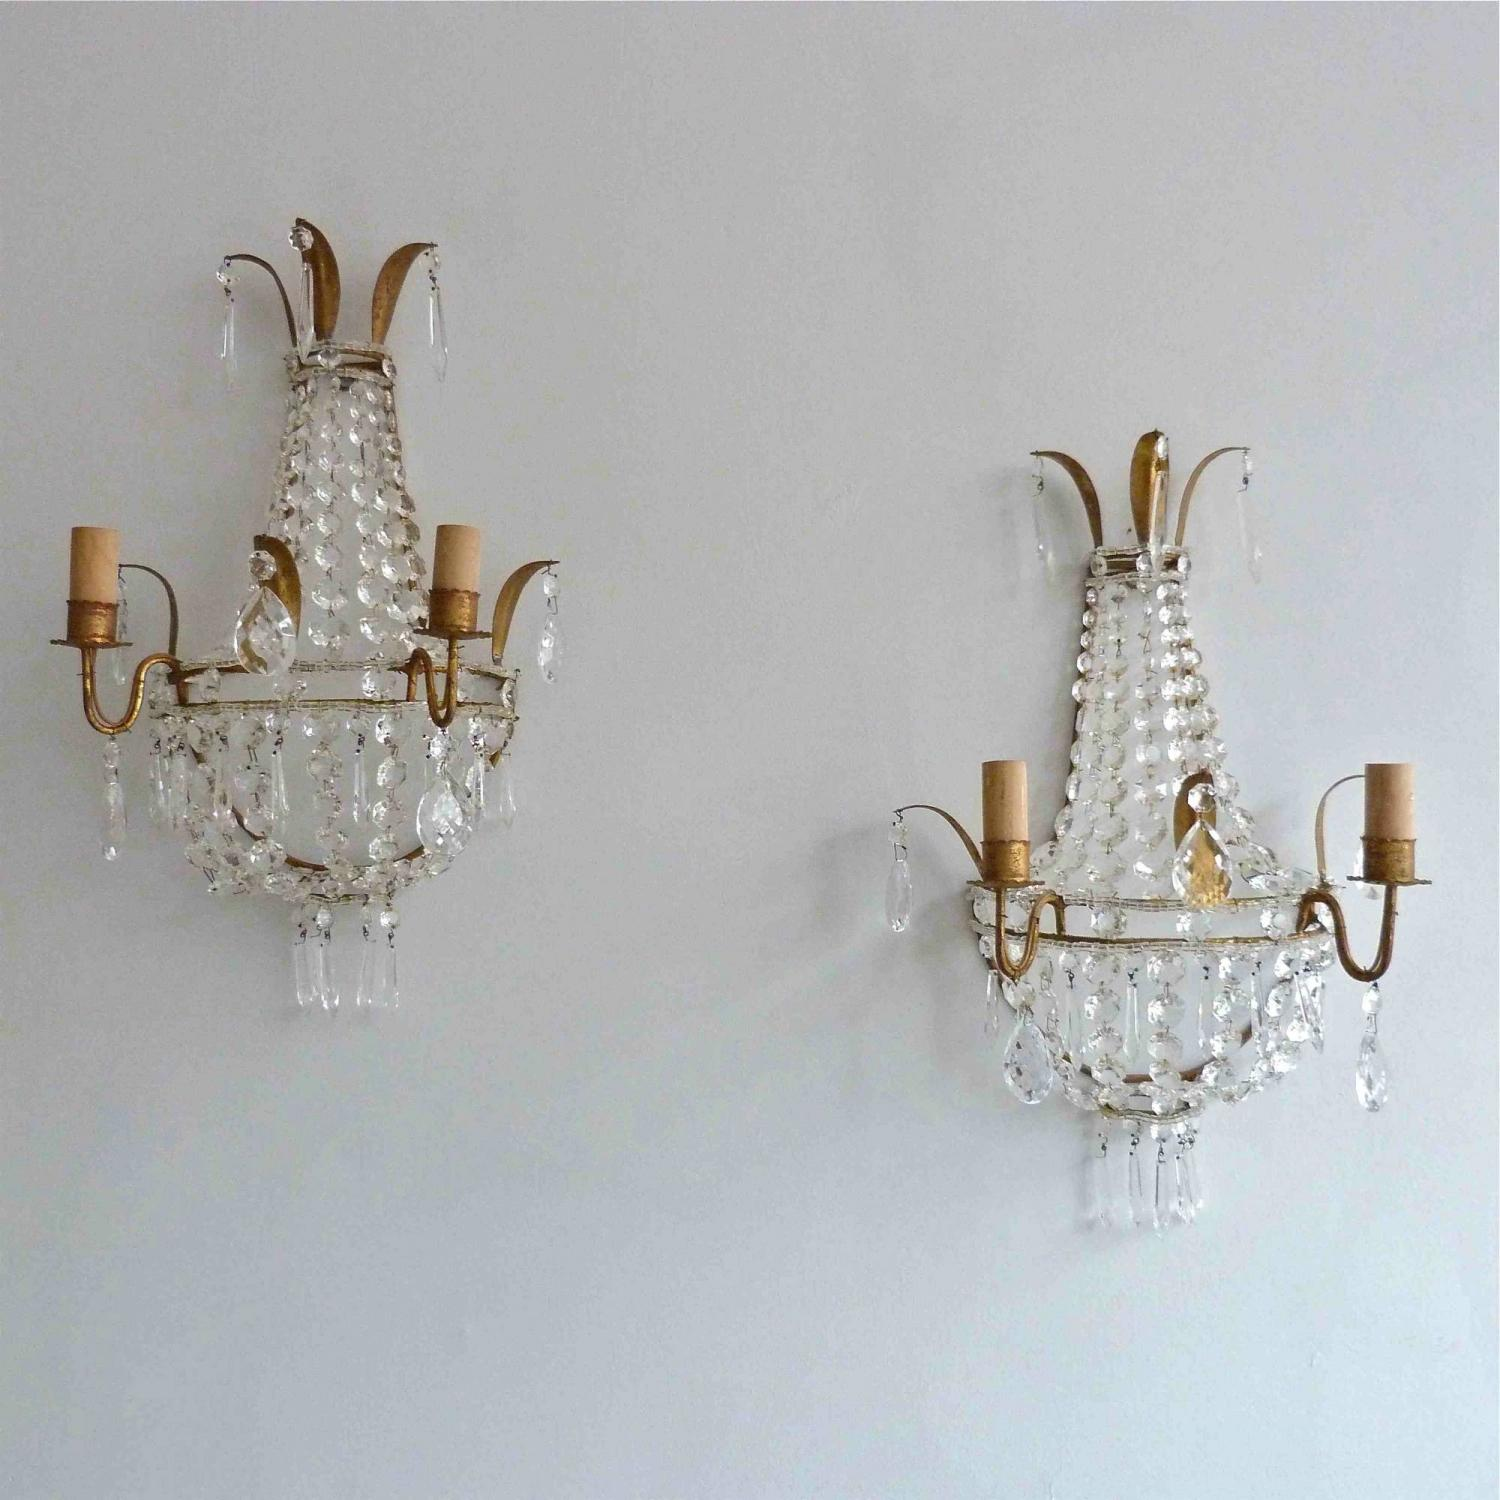 PAIR OF VINTAGE GILT ITALIAN WALL APPLIQUES